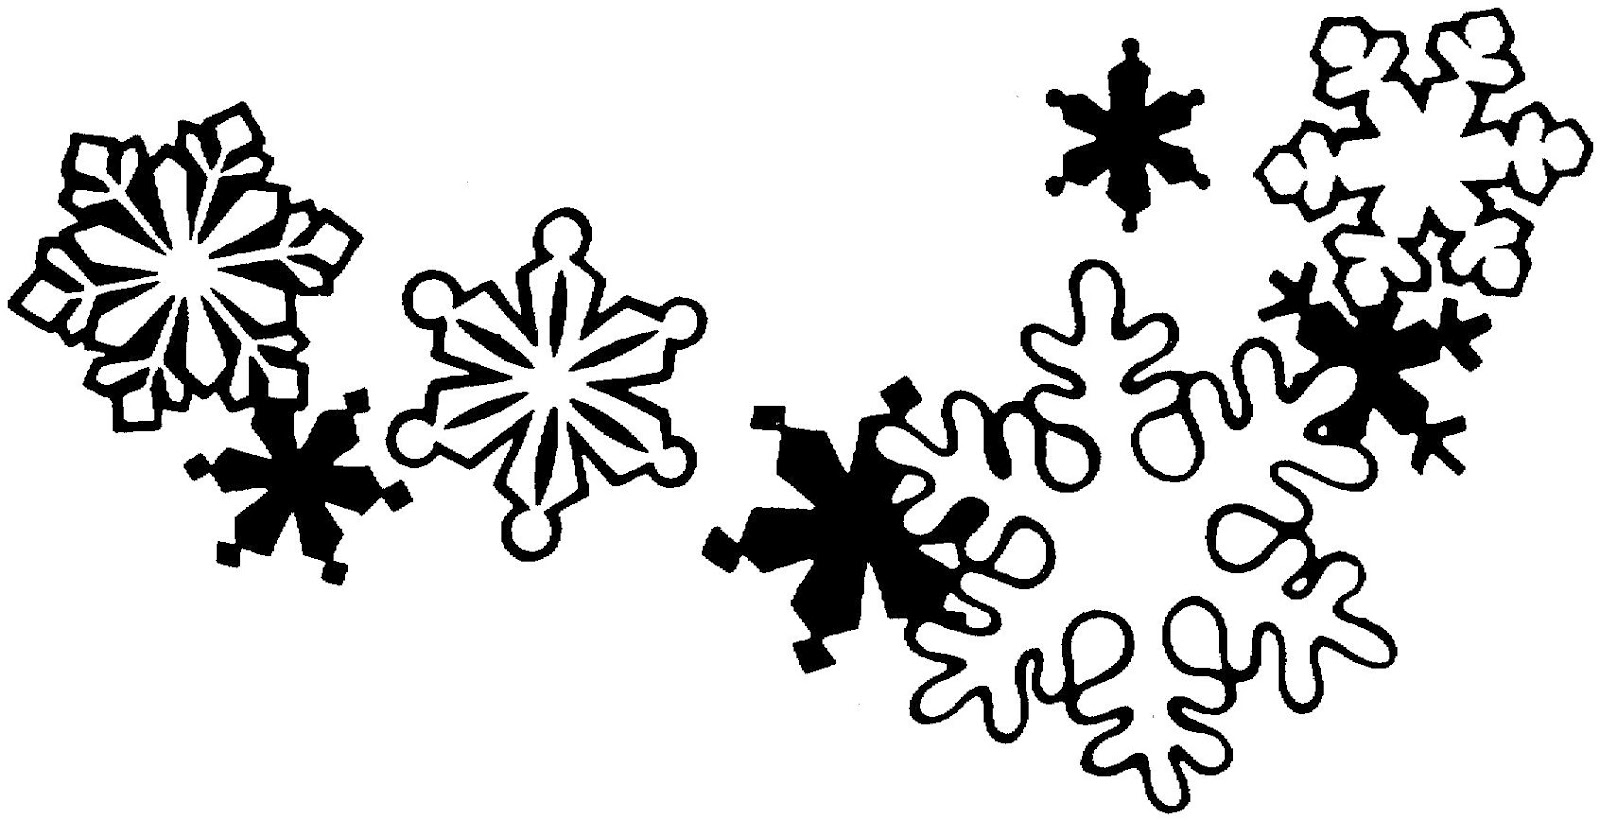 Christmas Ornament Clip Art Black And White Snowflake Clipart Black And White Clipart Panda Free